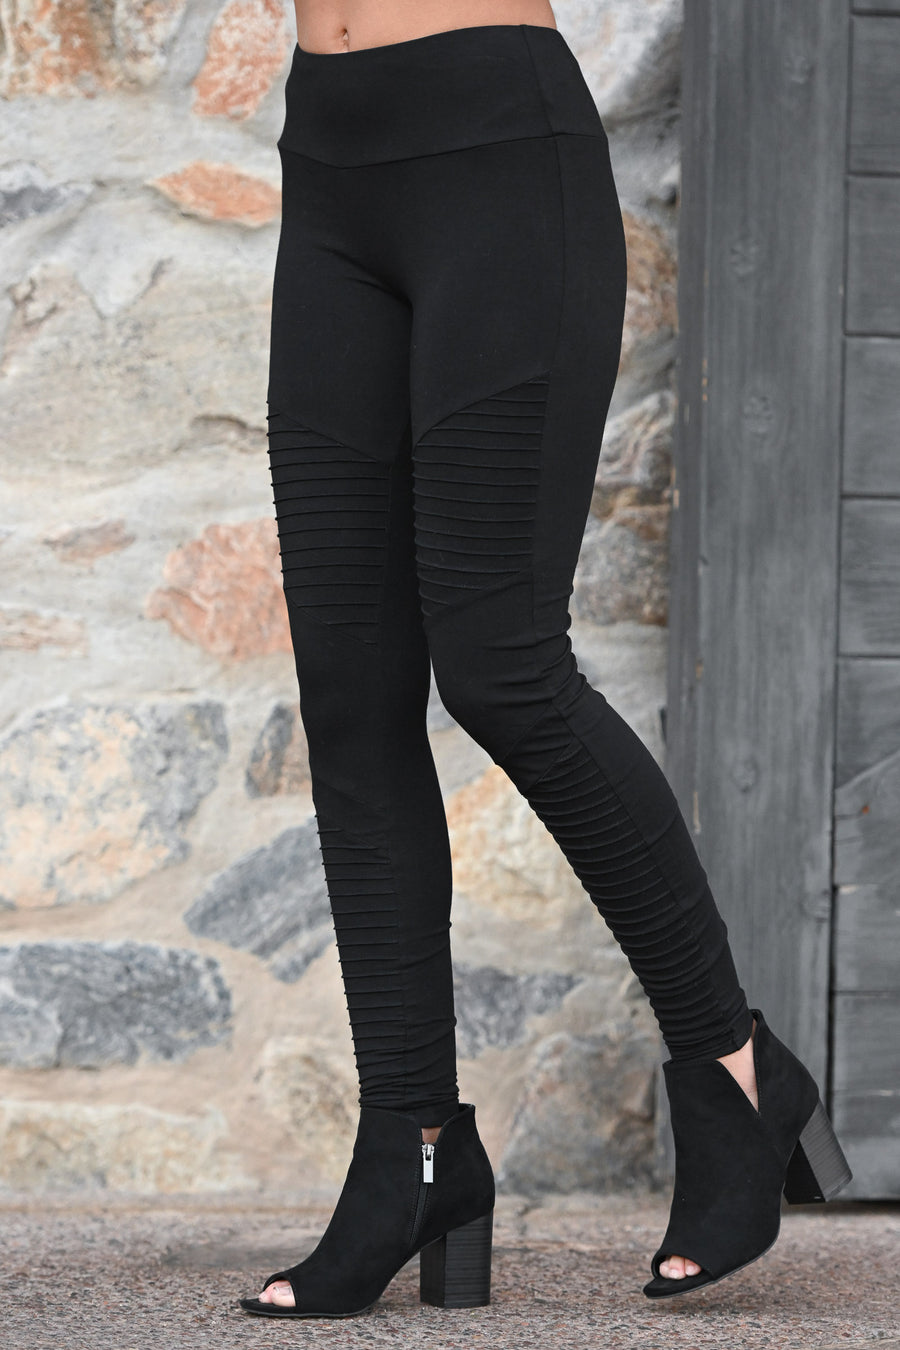 Living On The Edge Moto Leggings - Black women's athletic work out pants, Closet Candy Boutique 1